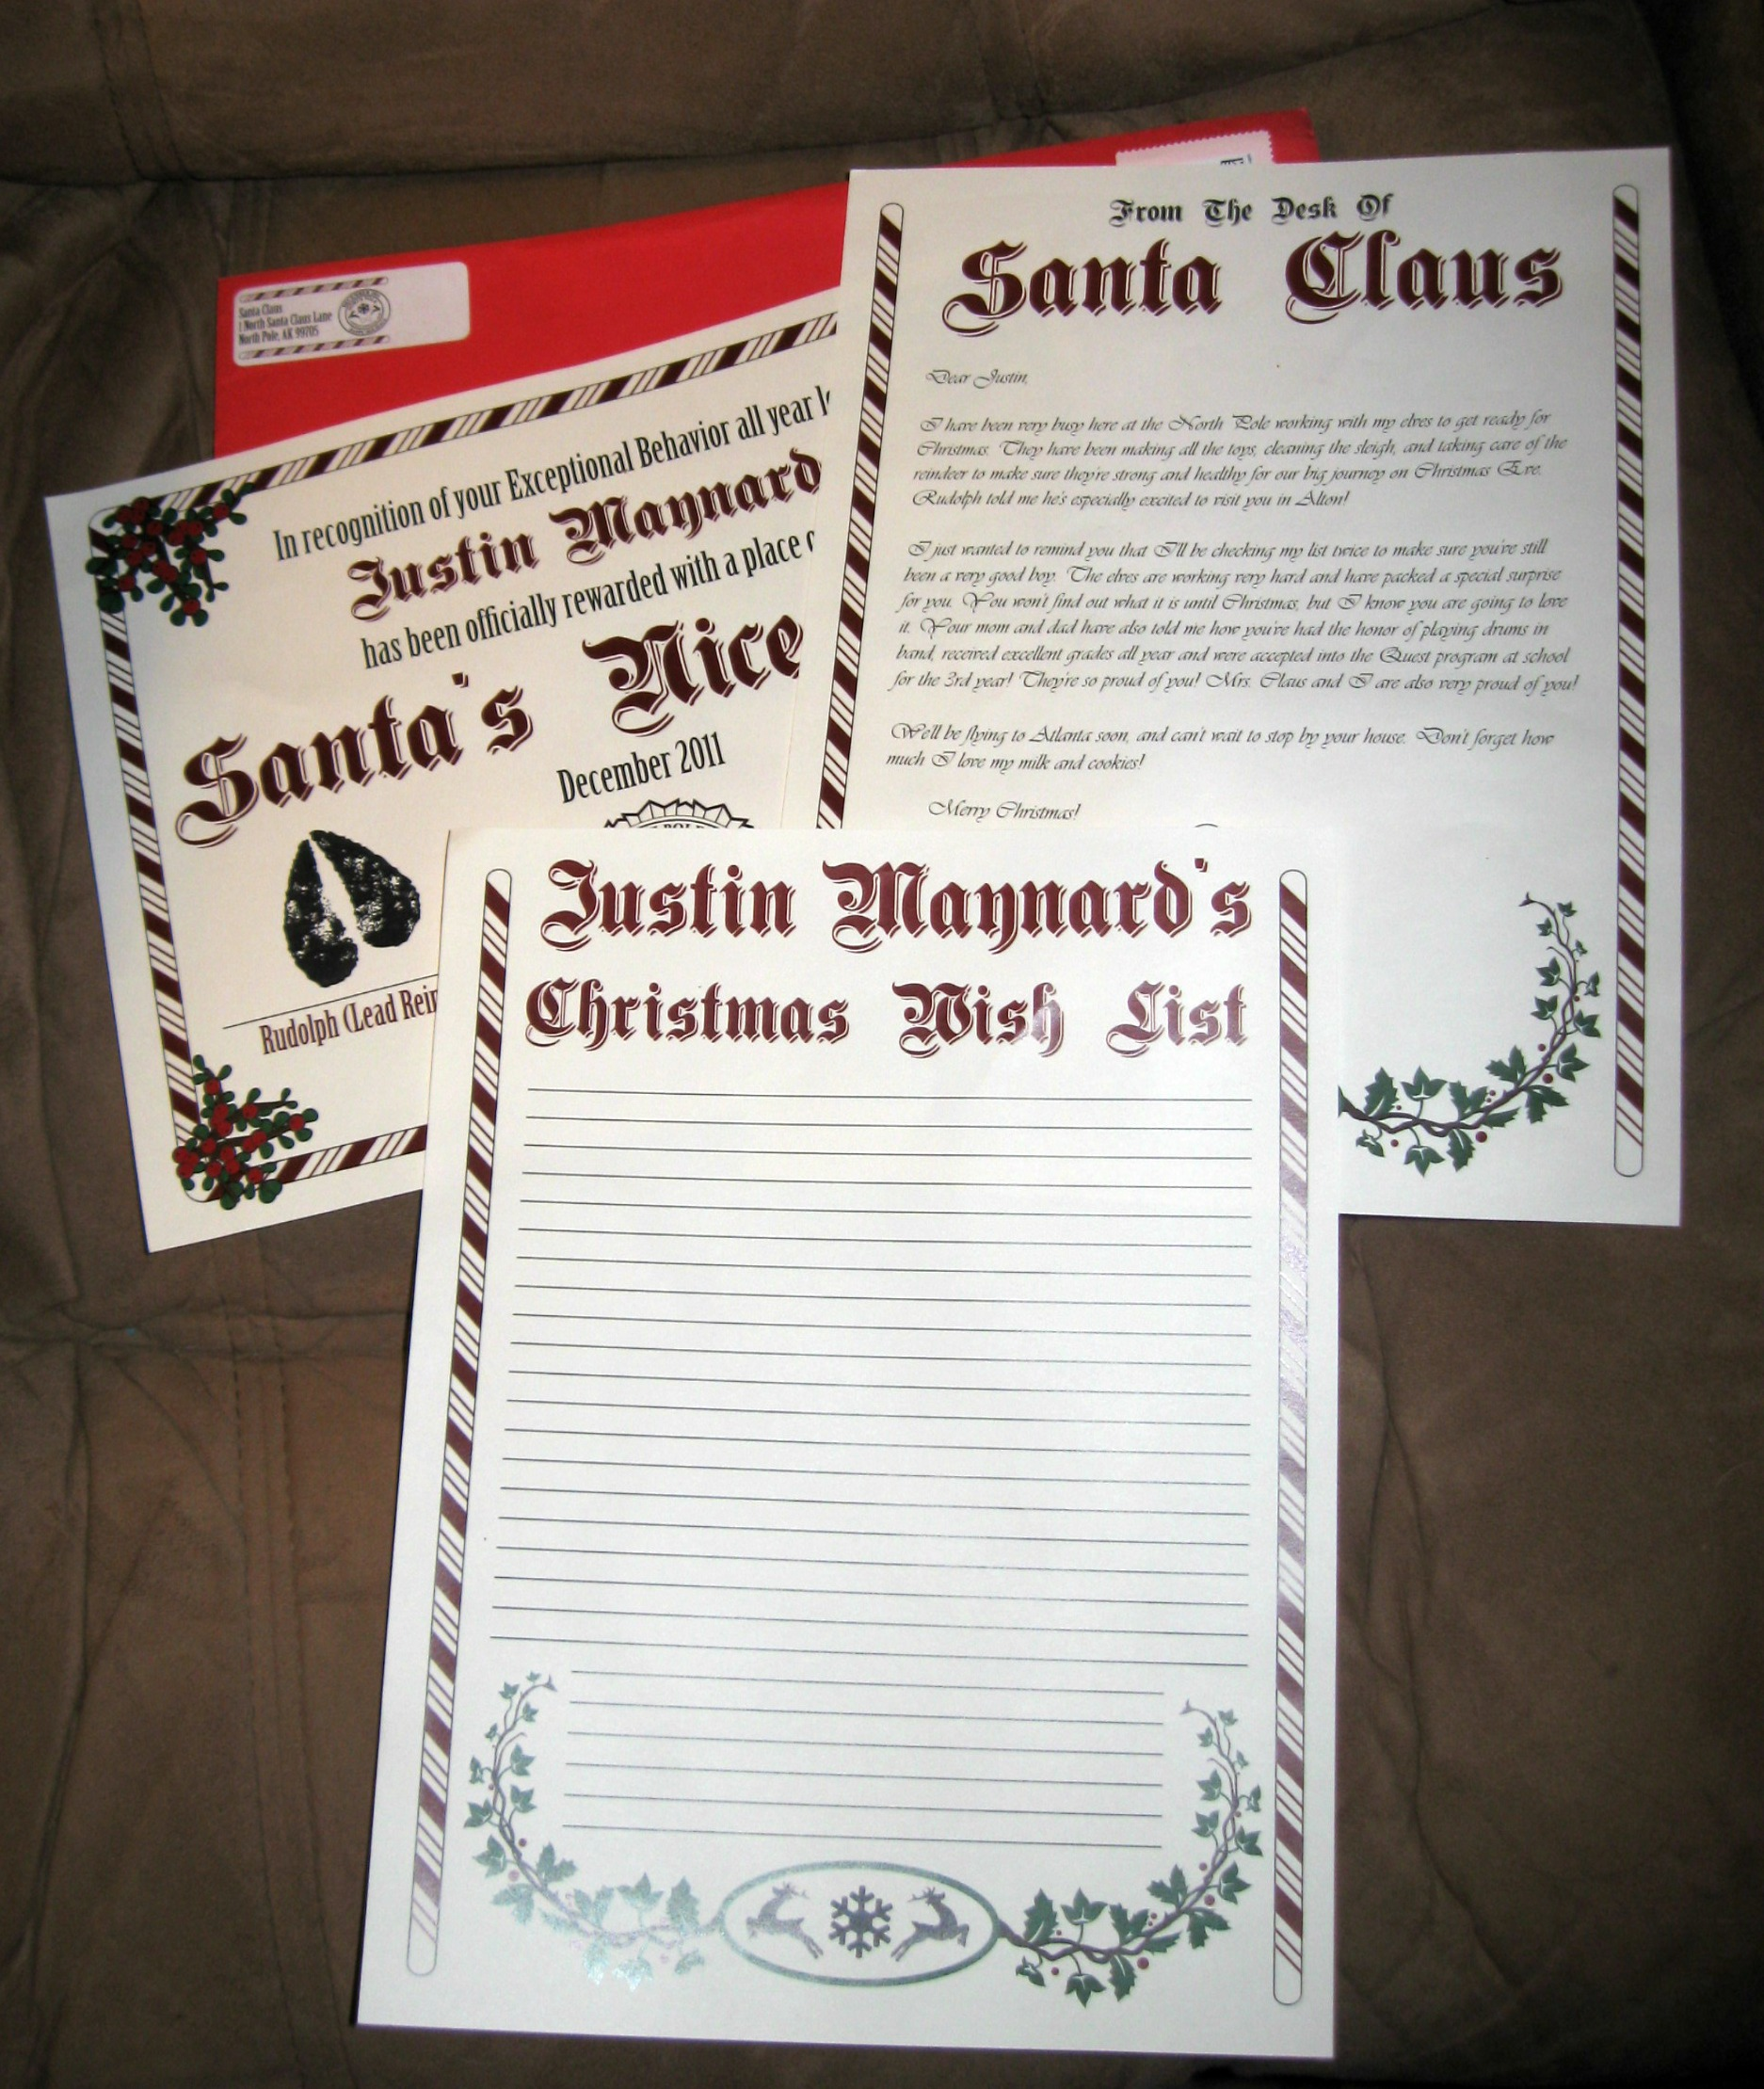 Holiday gift guide the original santa letter review the envelope also had a certificate for being awarded a place on santas nice list it is even stamped with rupolphs hoof and signed by santa claus altavistaventures Gallery